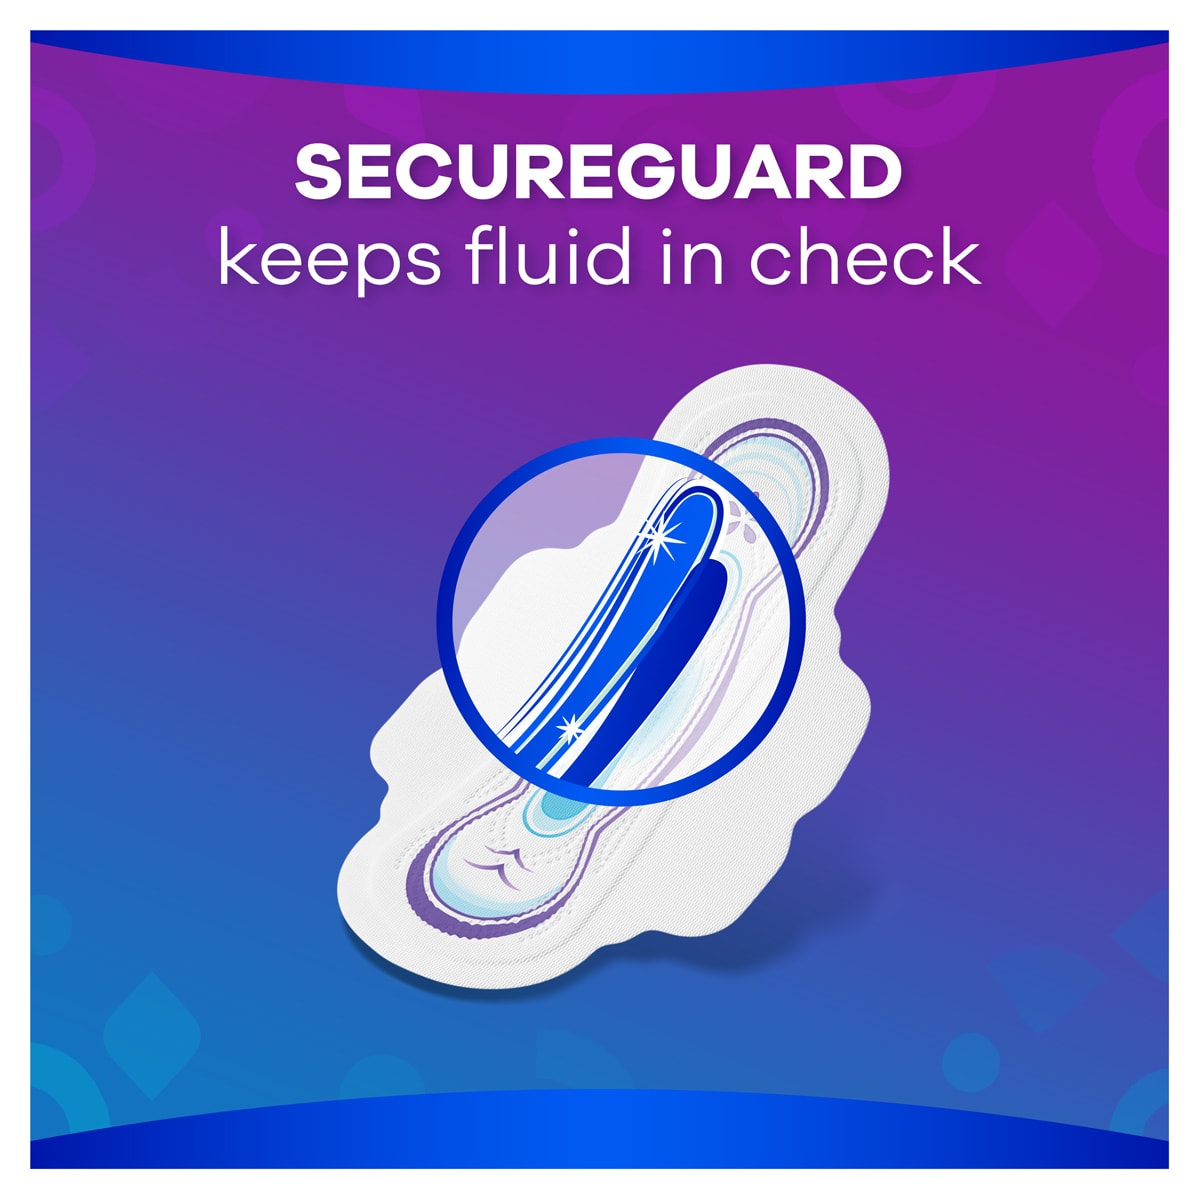 Secureguard keeps fluid in check